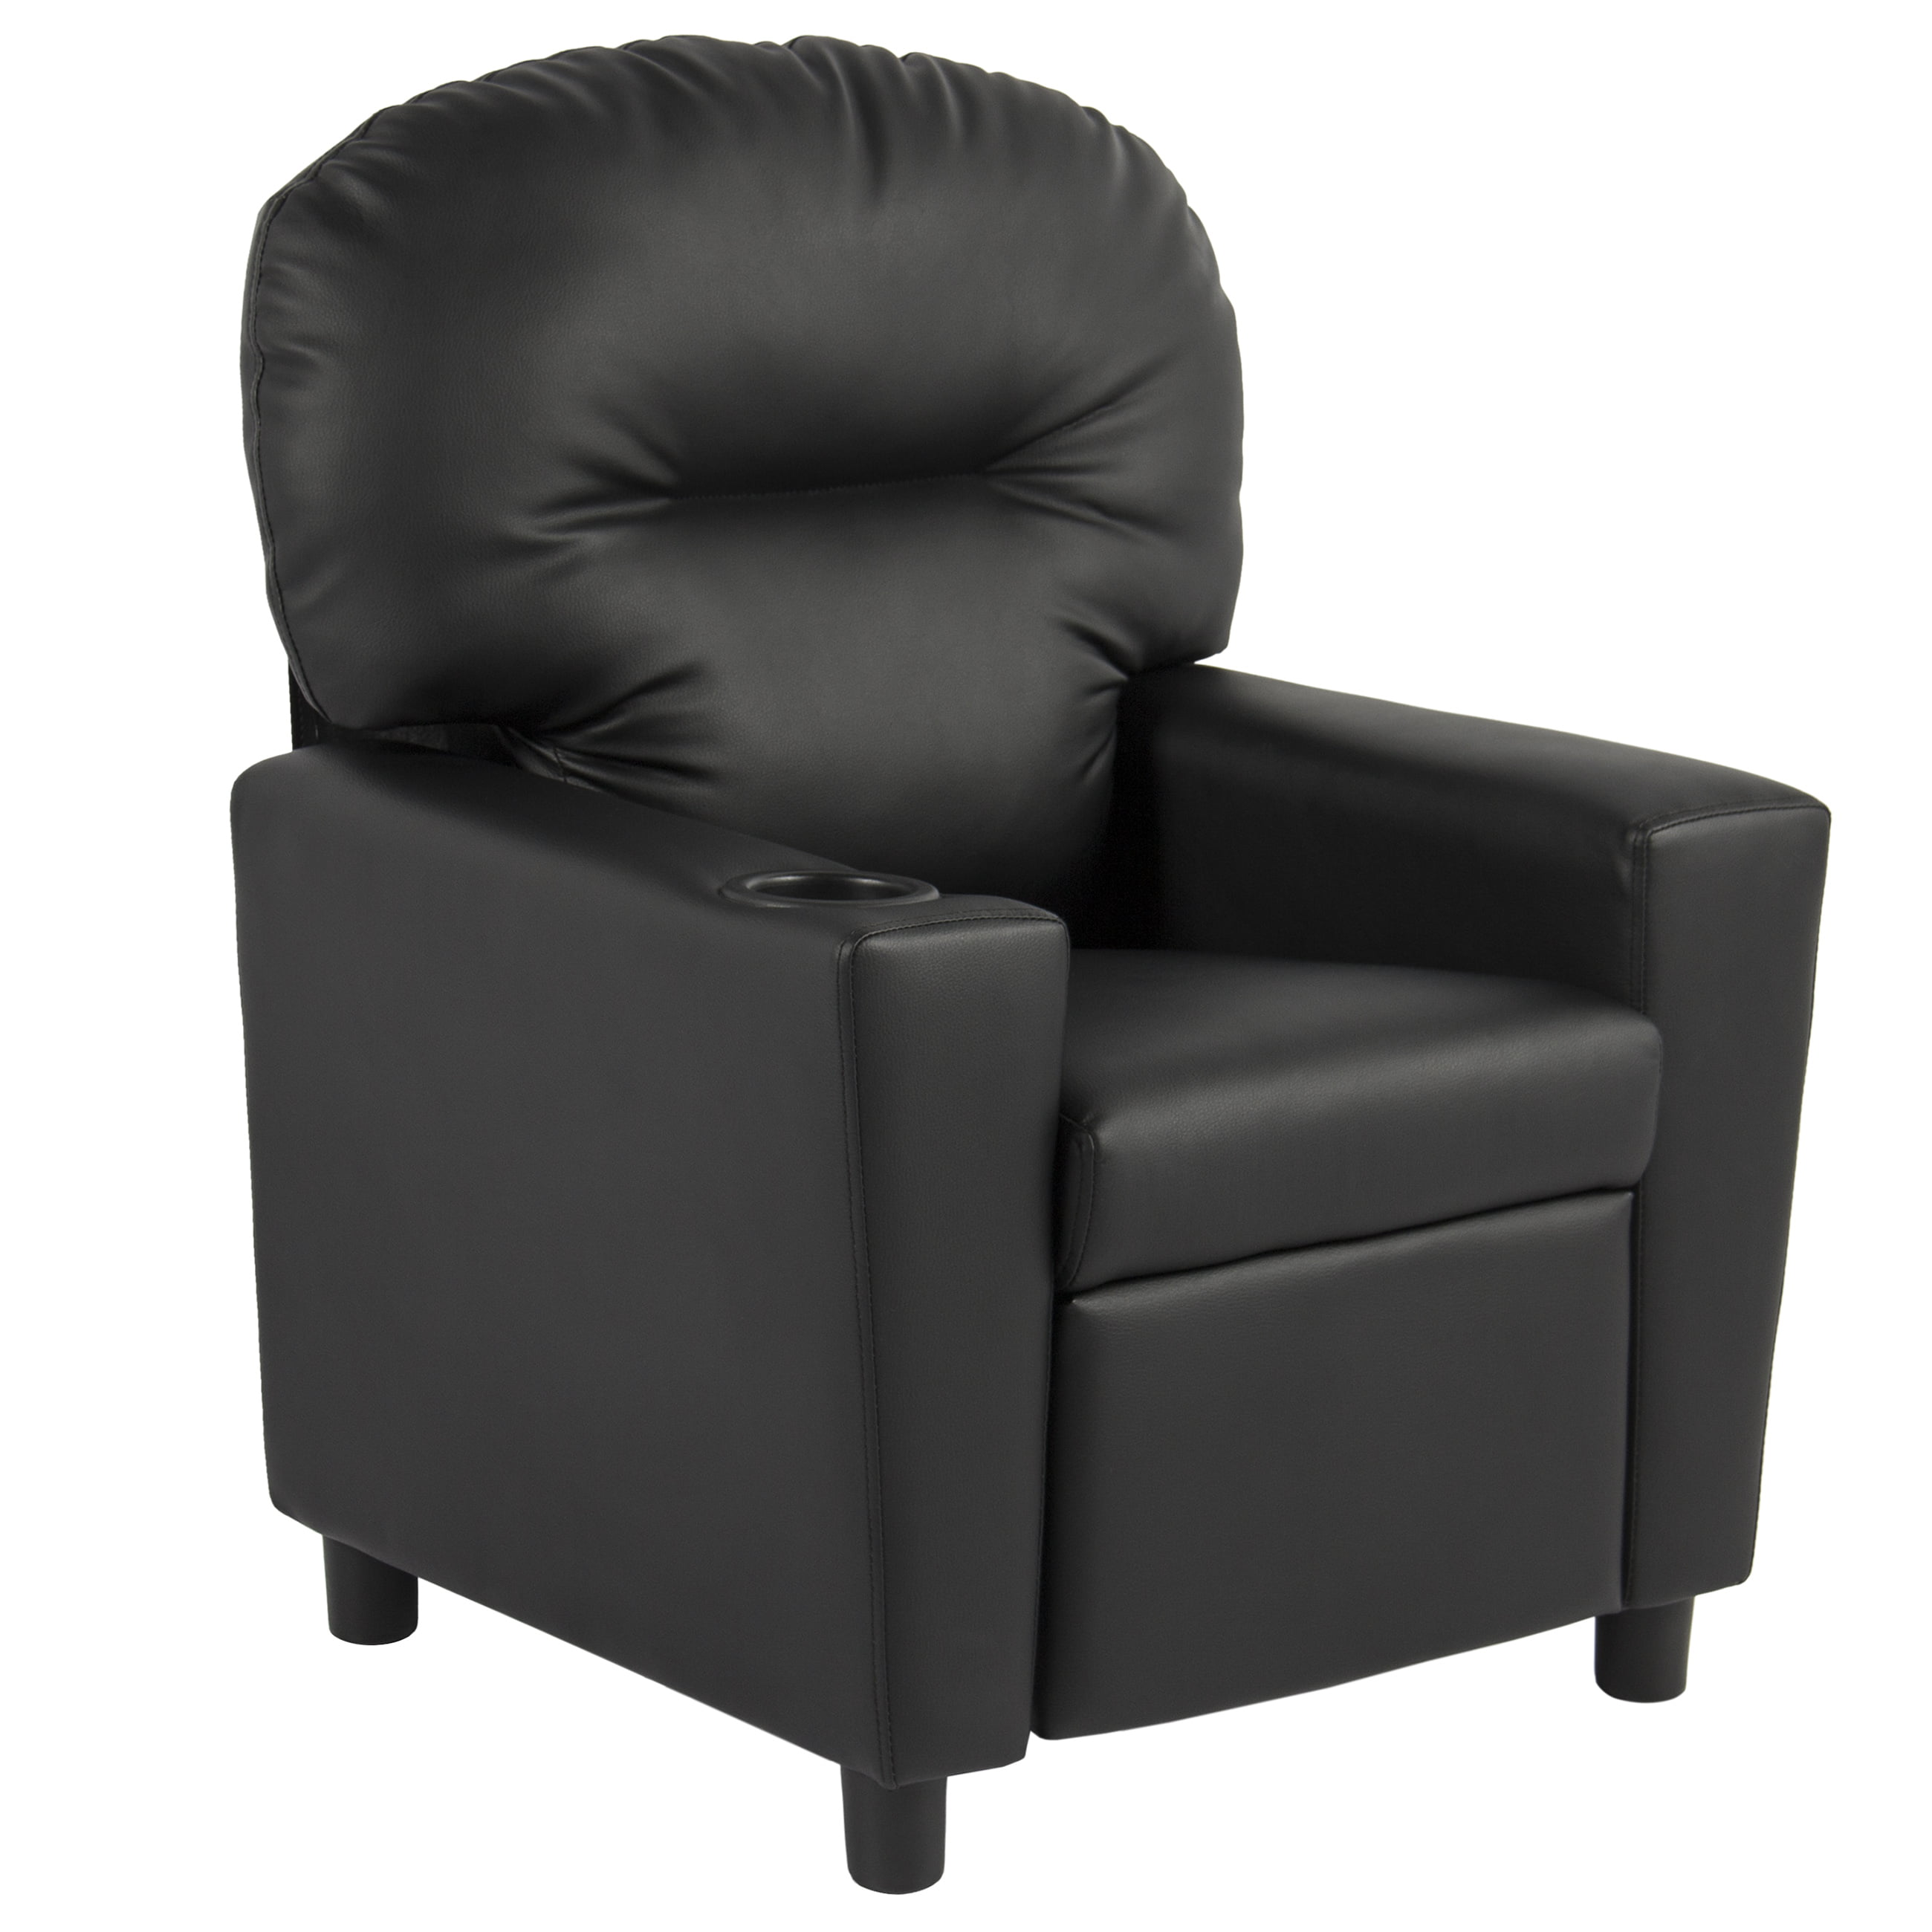 Best Choice Products Black Leather Kids Recliner Chair with Cup Holder by